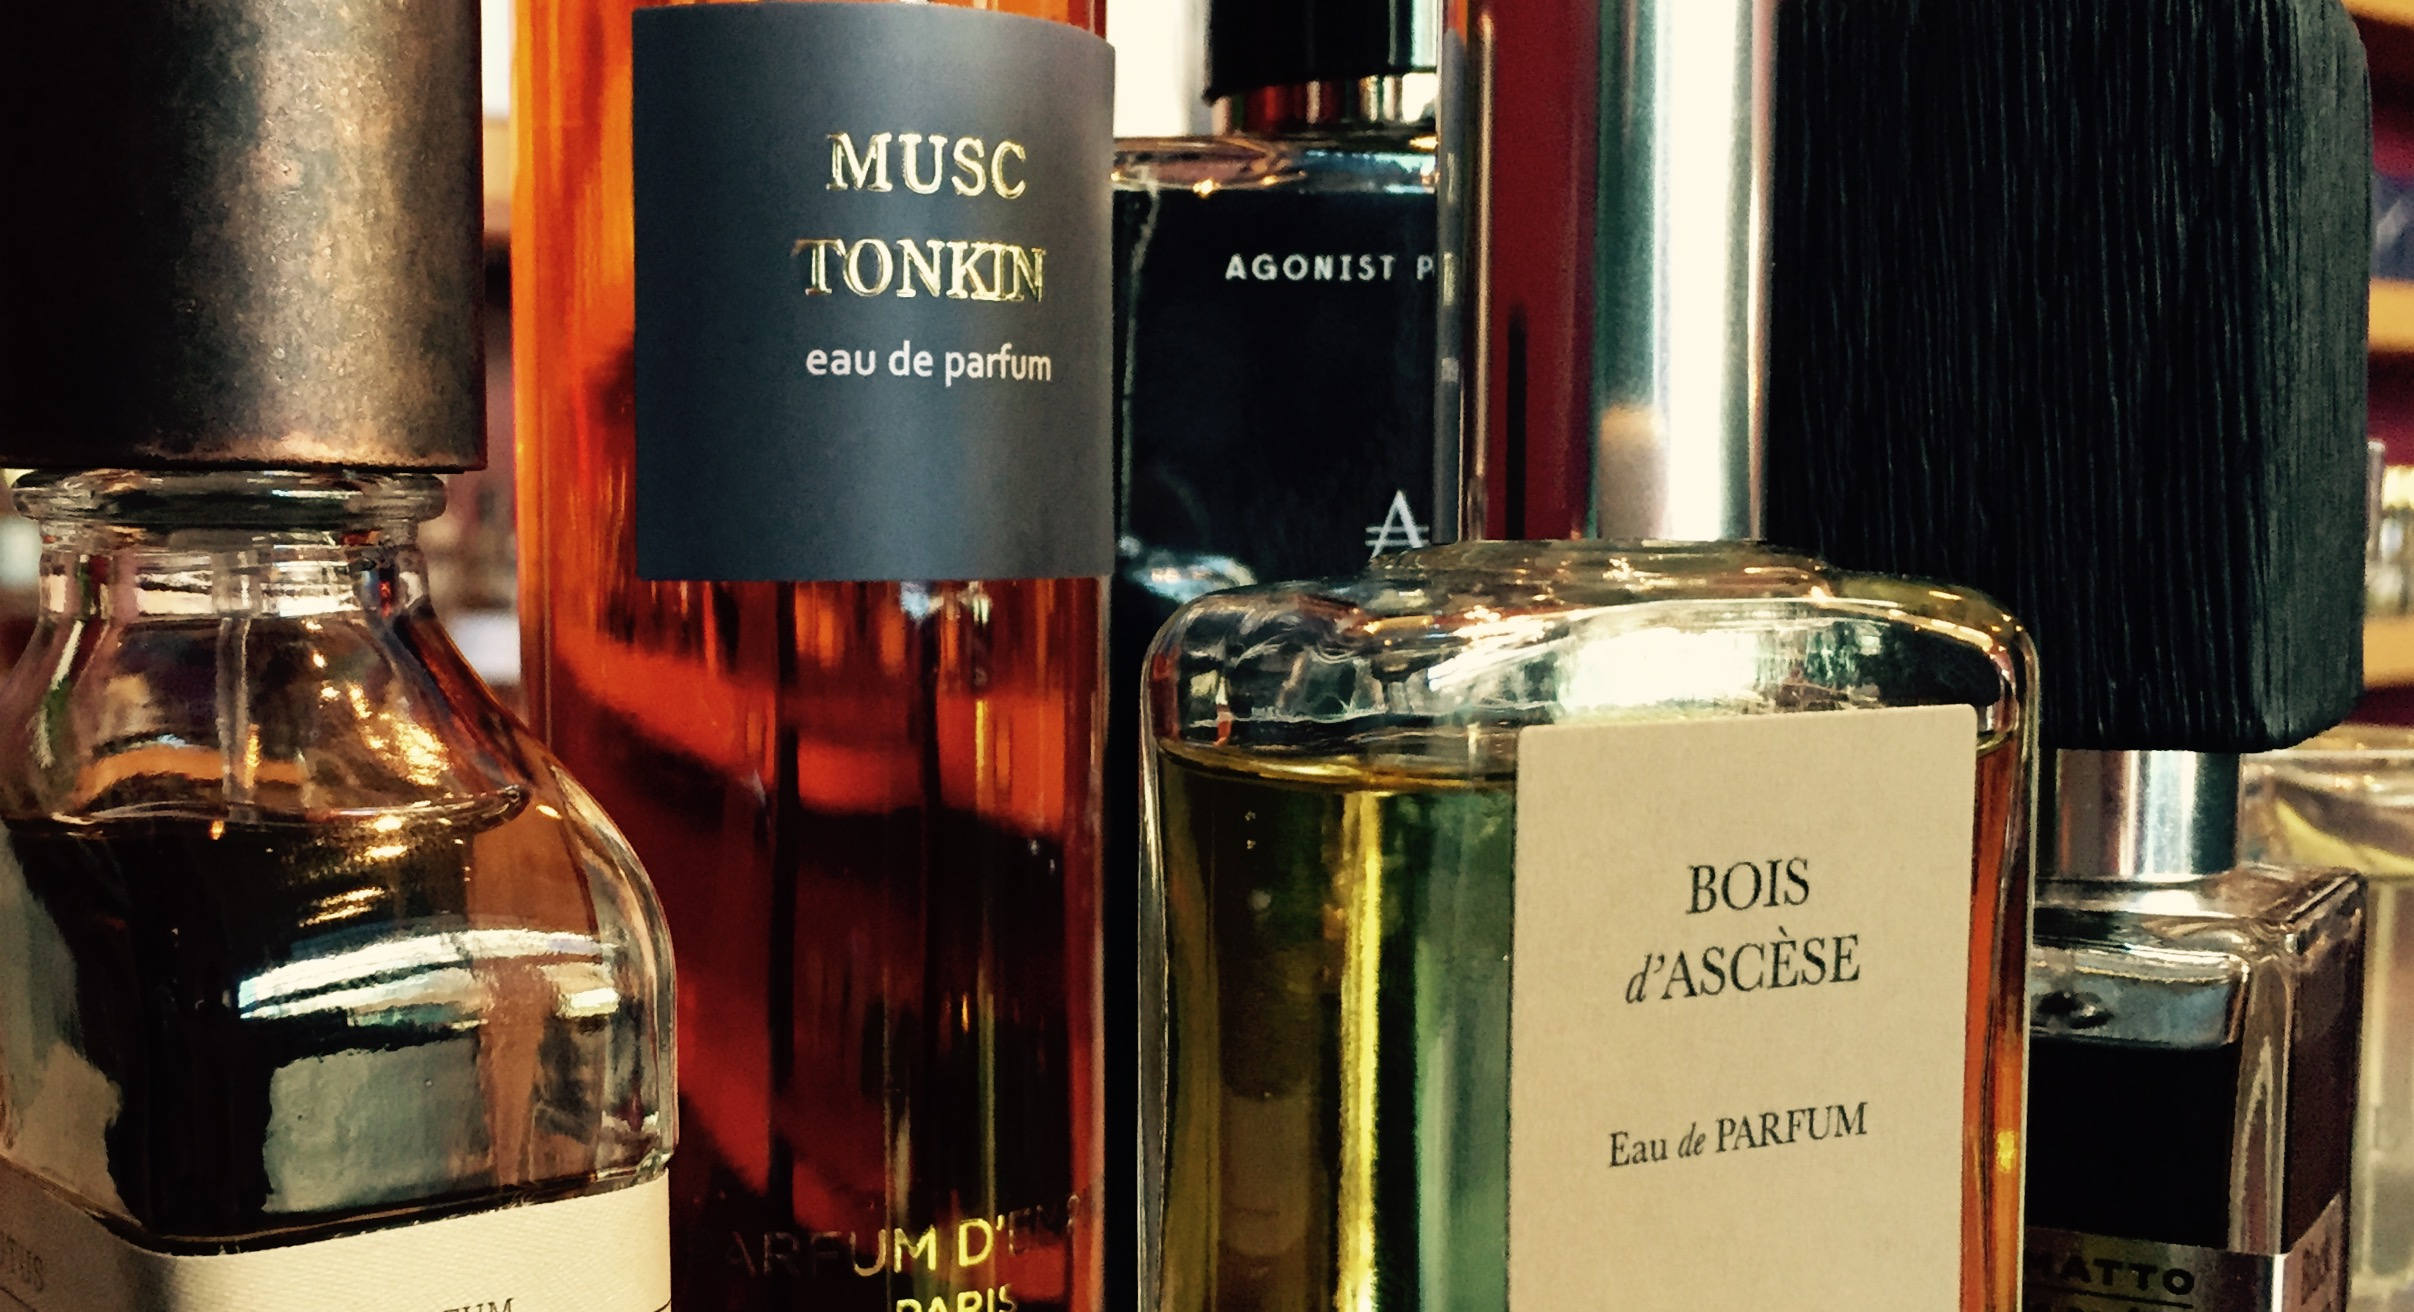 The fragrances pictured here range in concentration from eau de parfum to extrait and no two are guaranteed to have the same percentage of aromatic compounds.